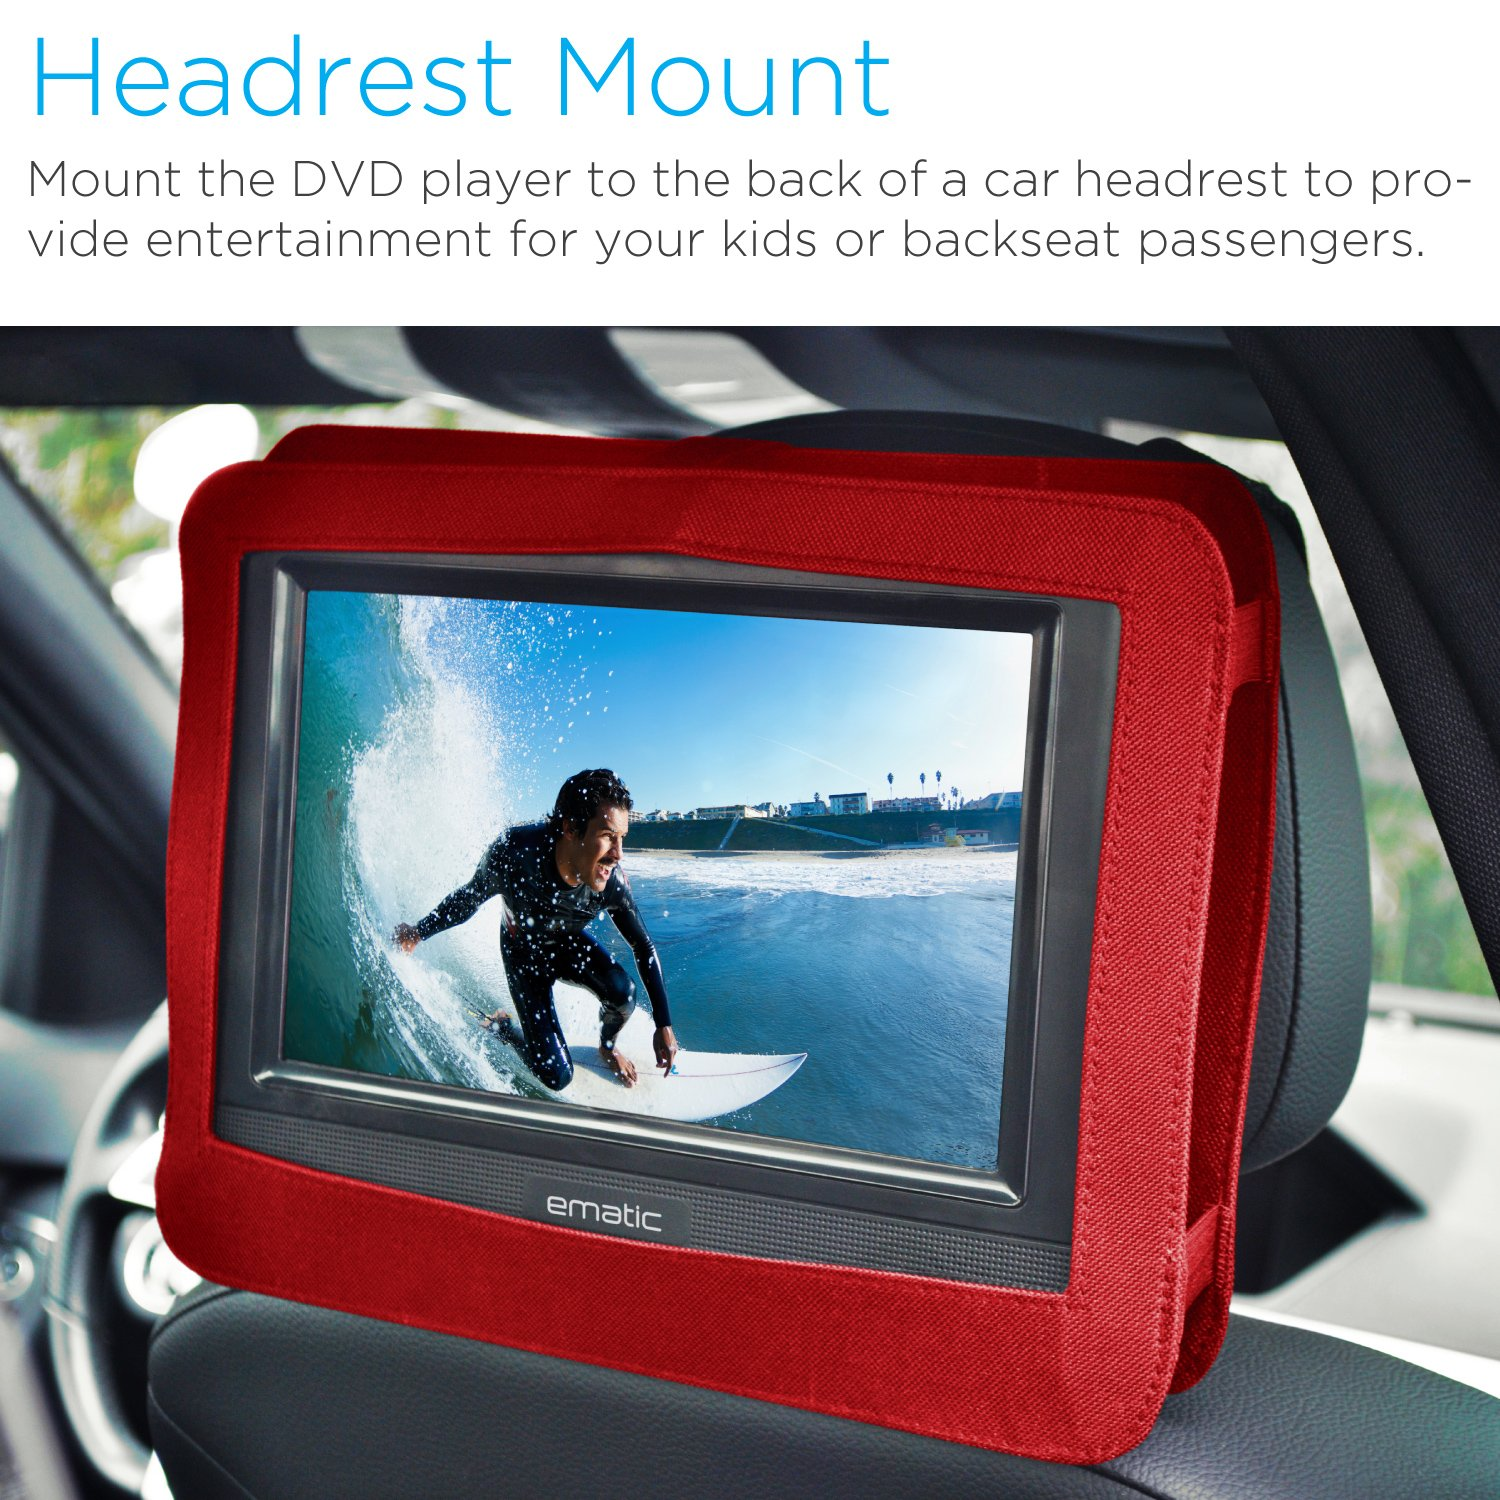 amazoncom ematic 10 portable dvd player swivel screen with matching headphones car headrest mount red electronics